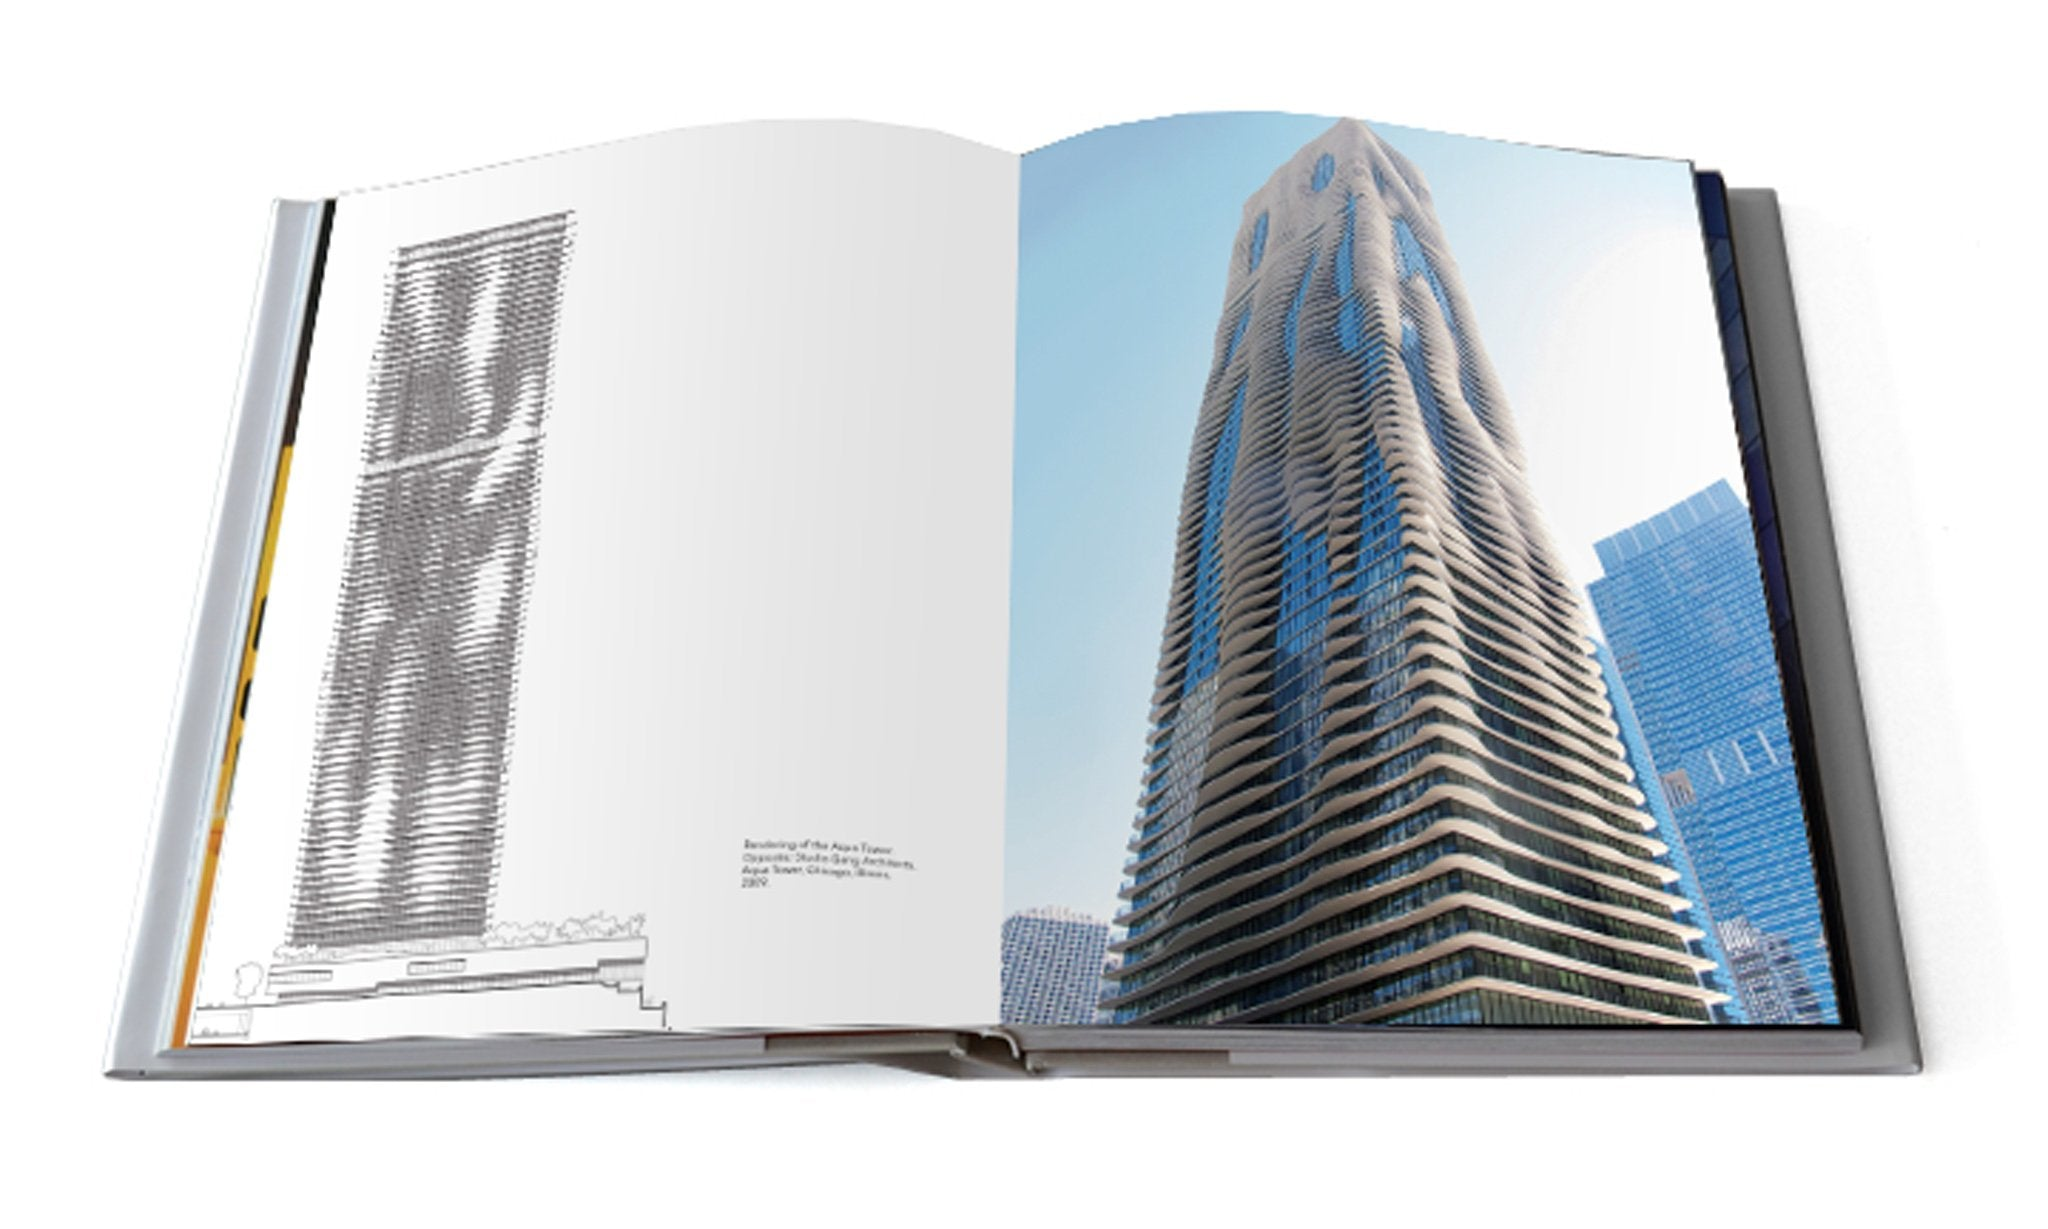 Assouline Books Portraits of the New Architecture 2